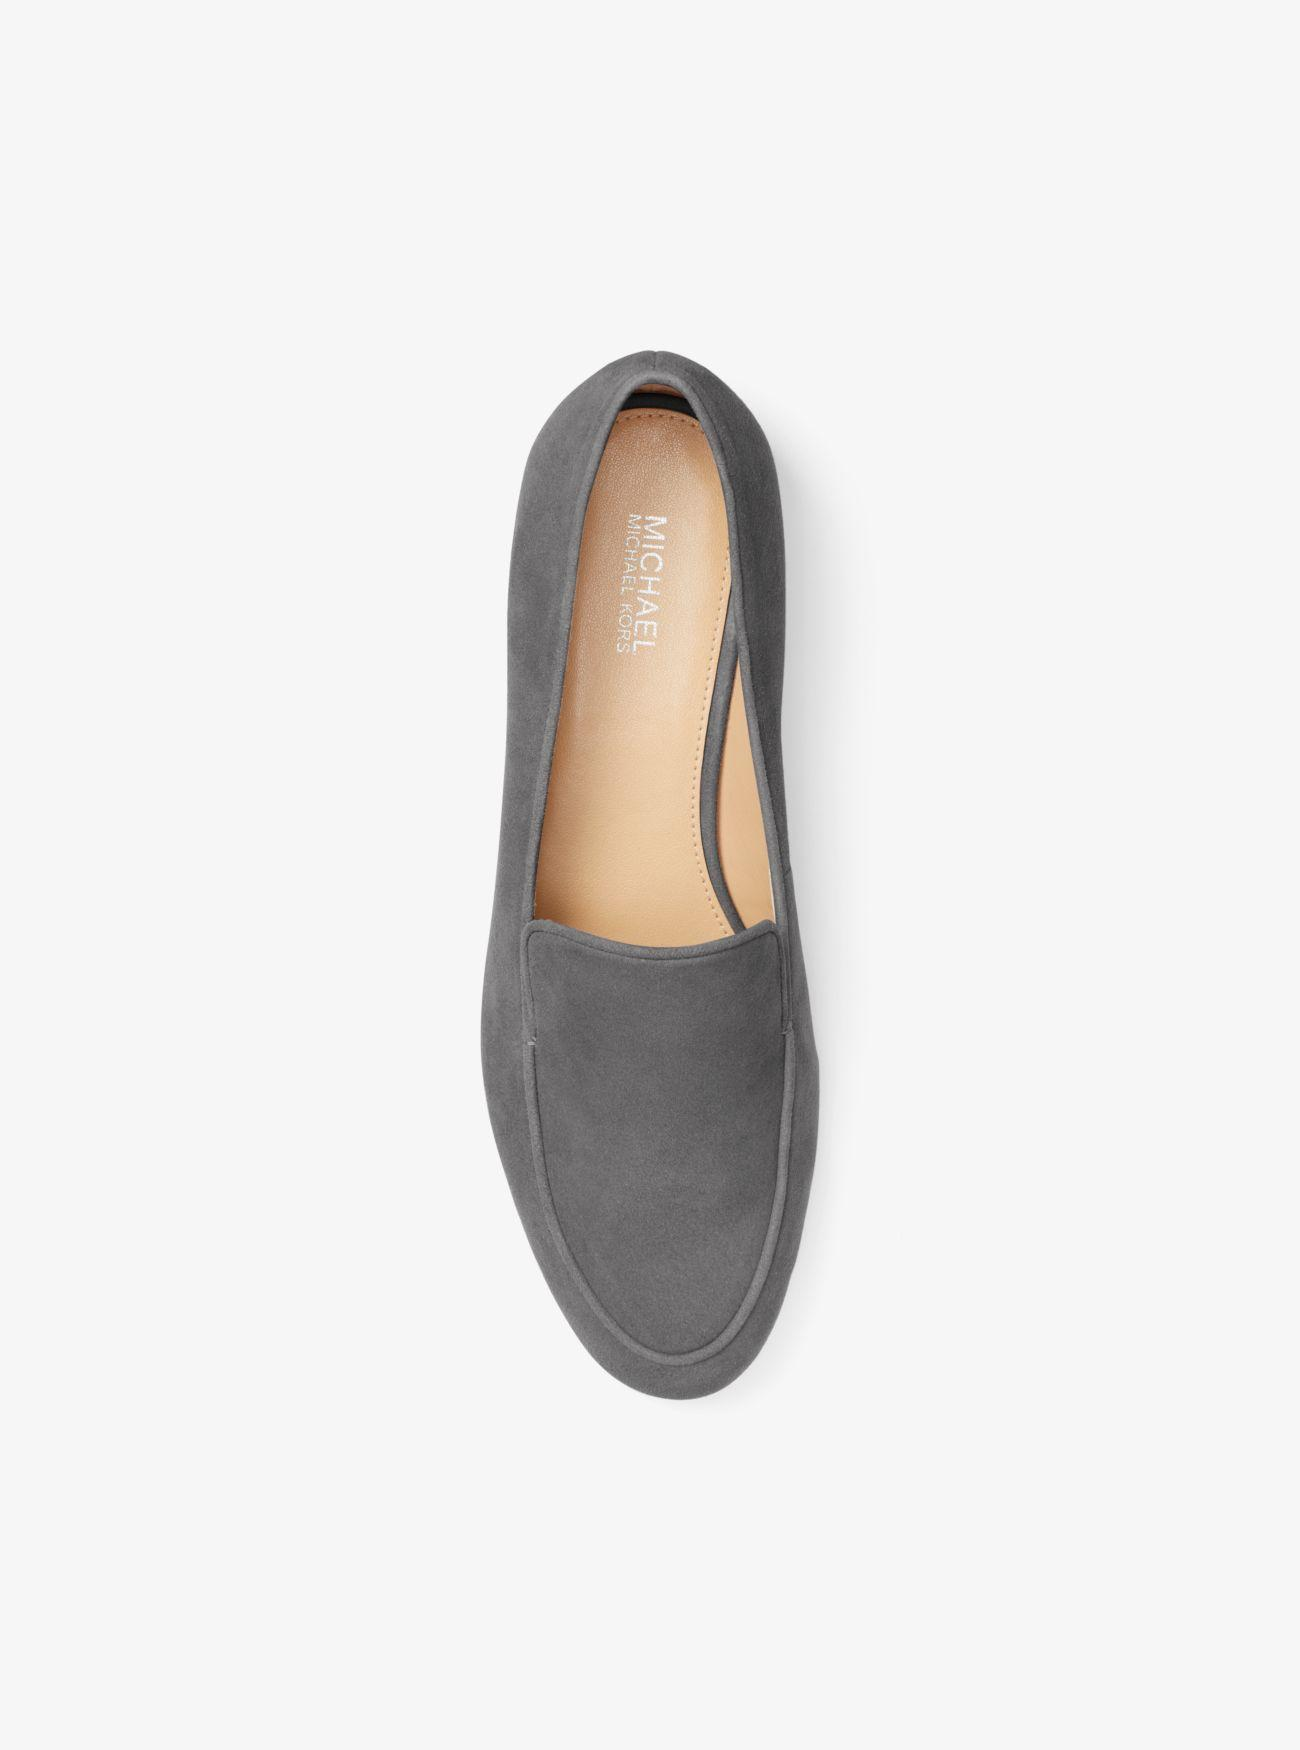 583d3635a64 Michael Kors - Gray Valerie Suede Loafer - Lyst. View fullscreen